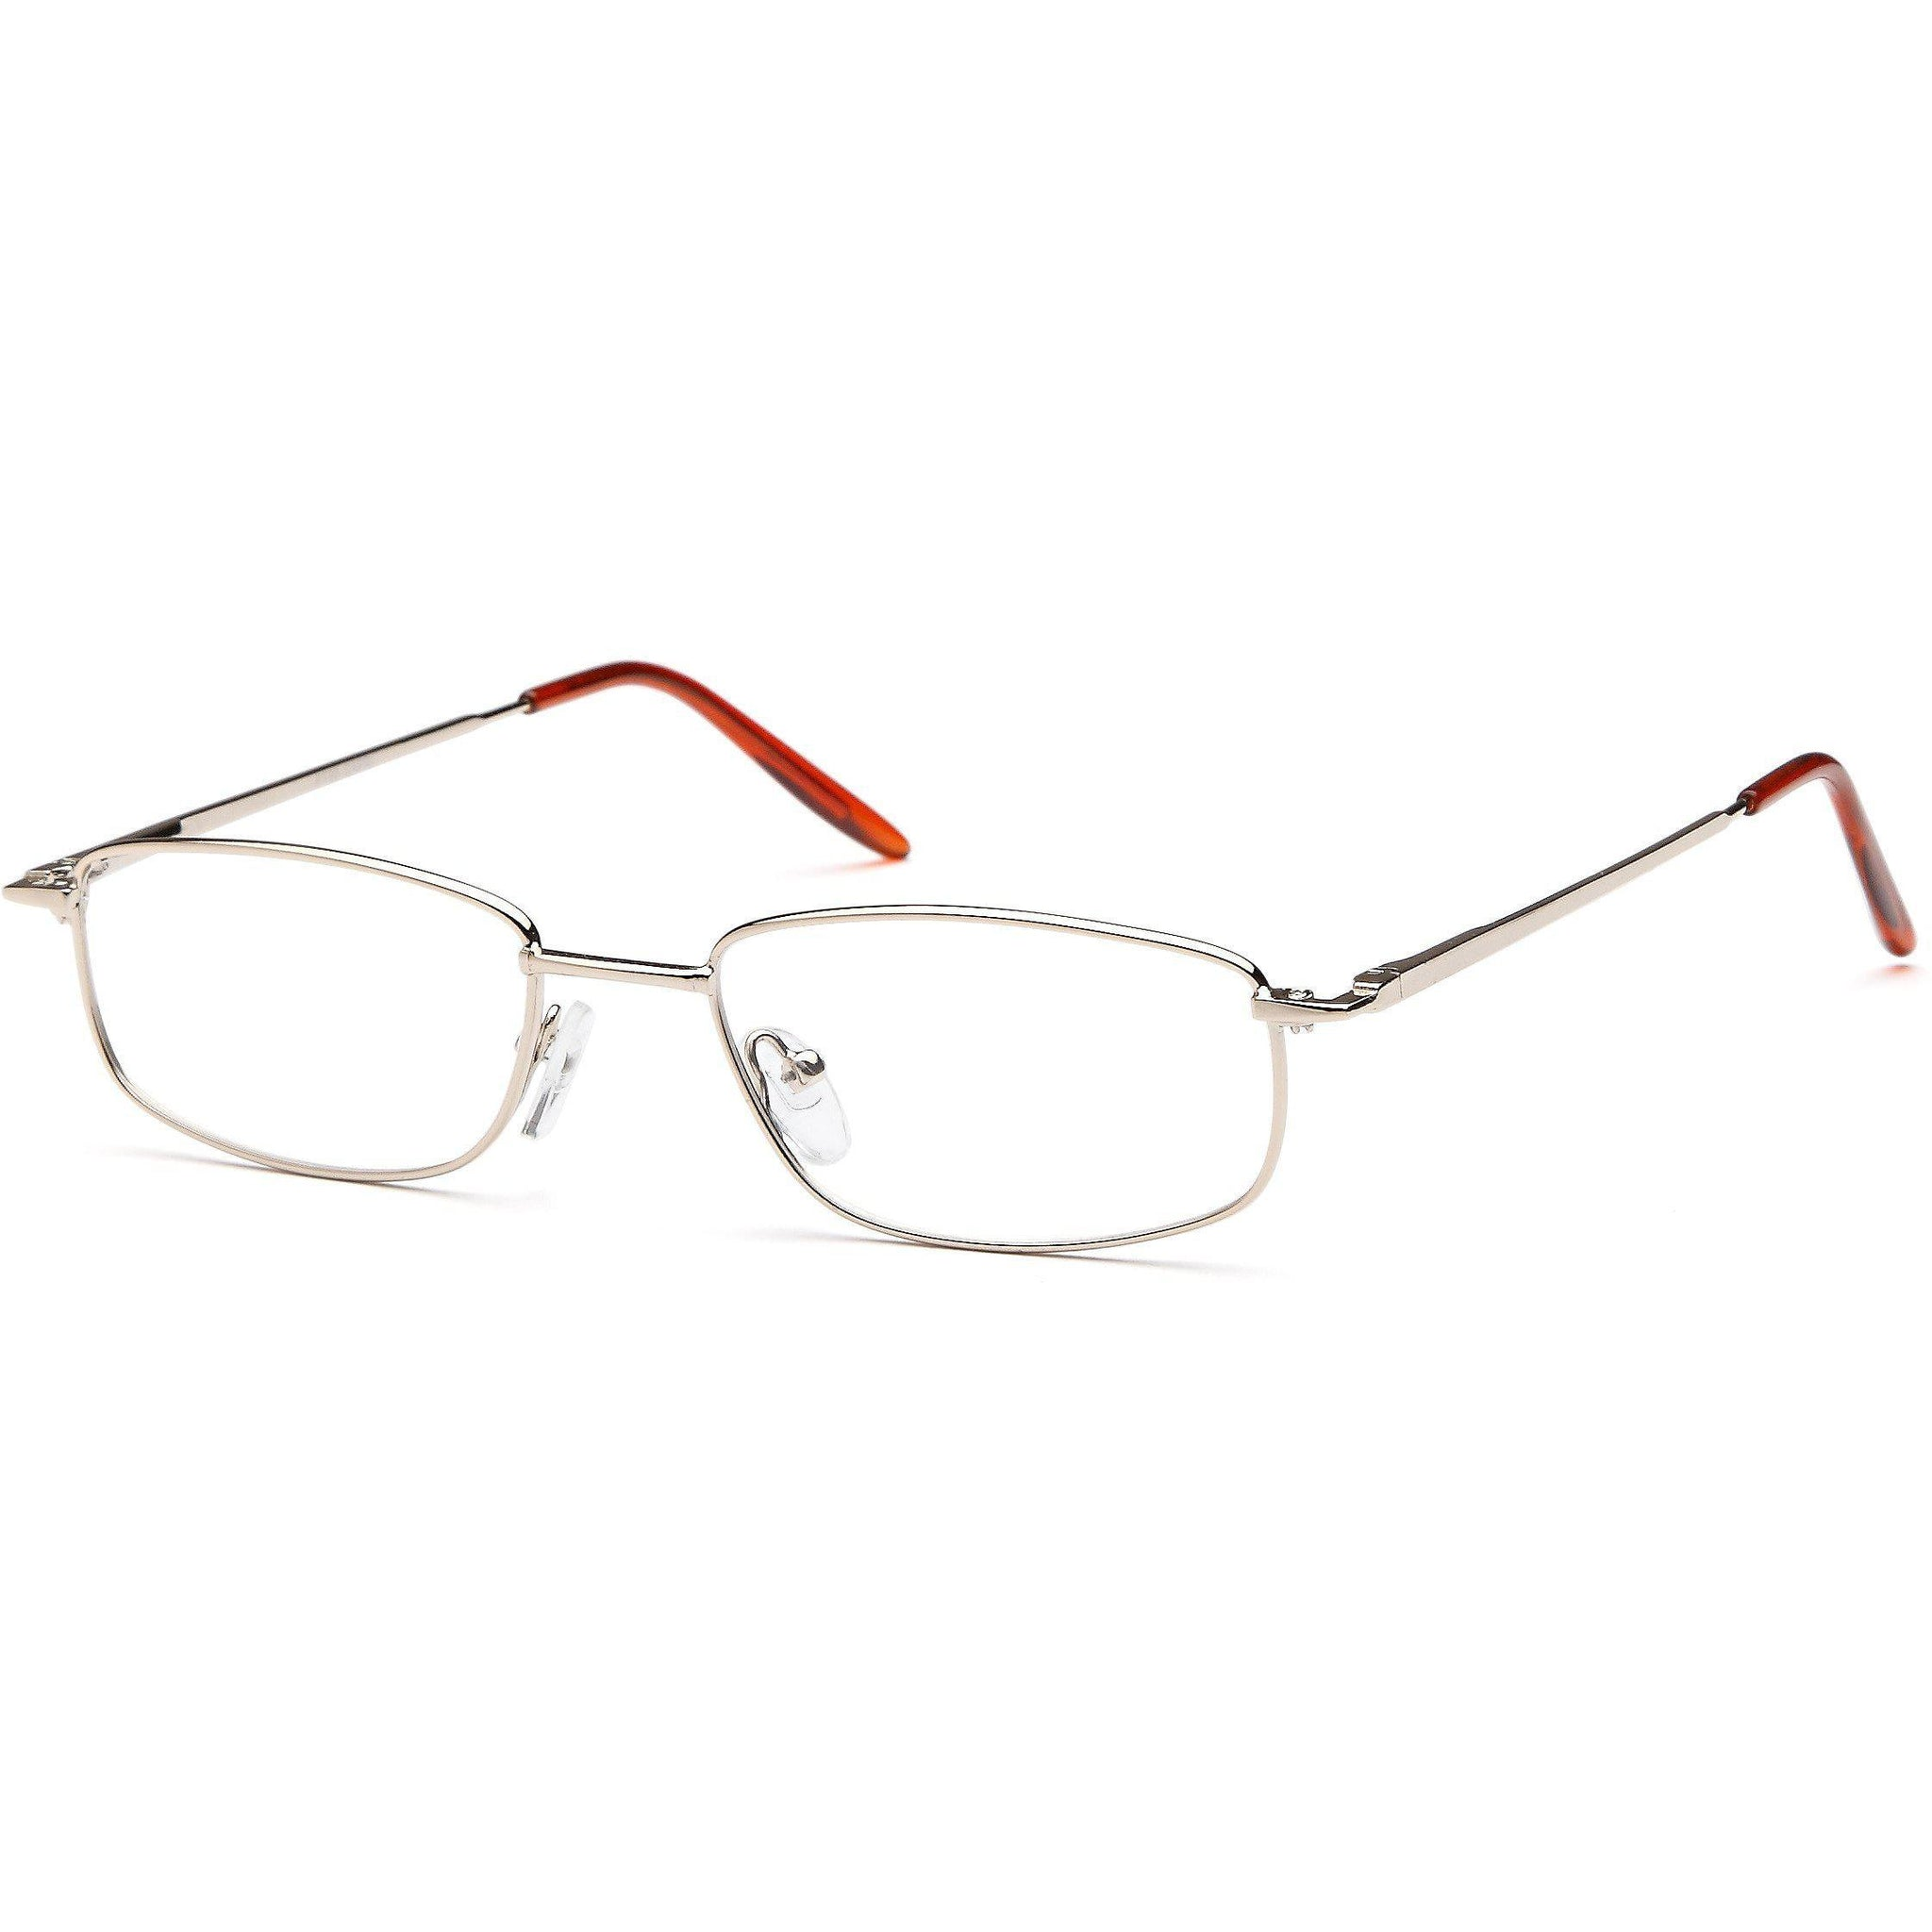 Appletree Prescription Glasses PT 60 Eyeglasses Frame